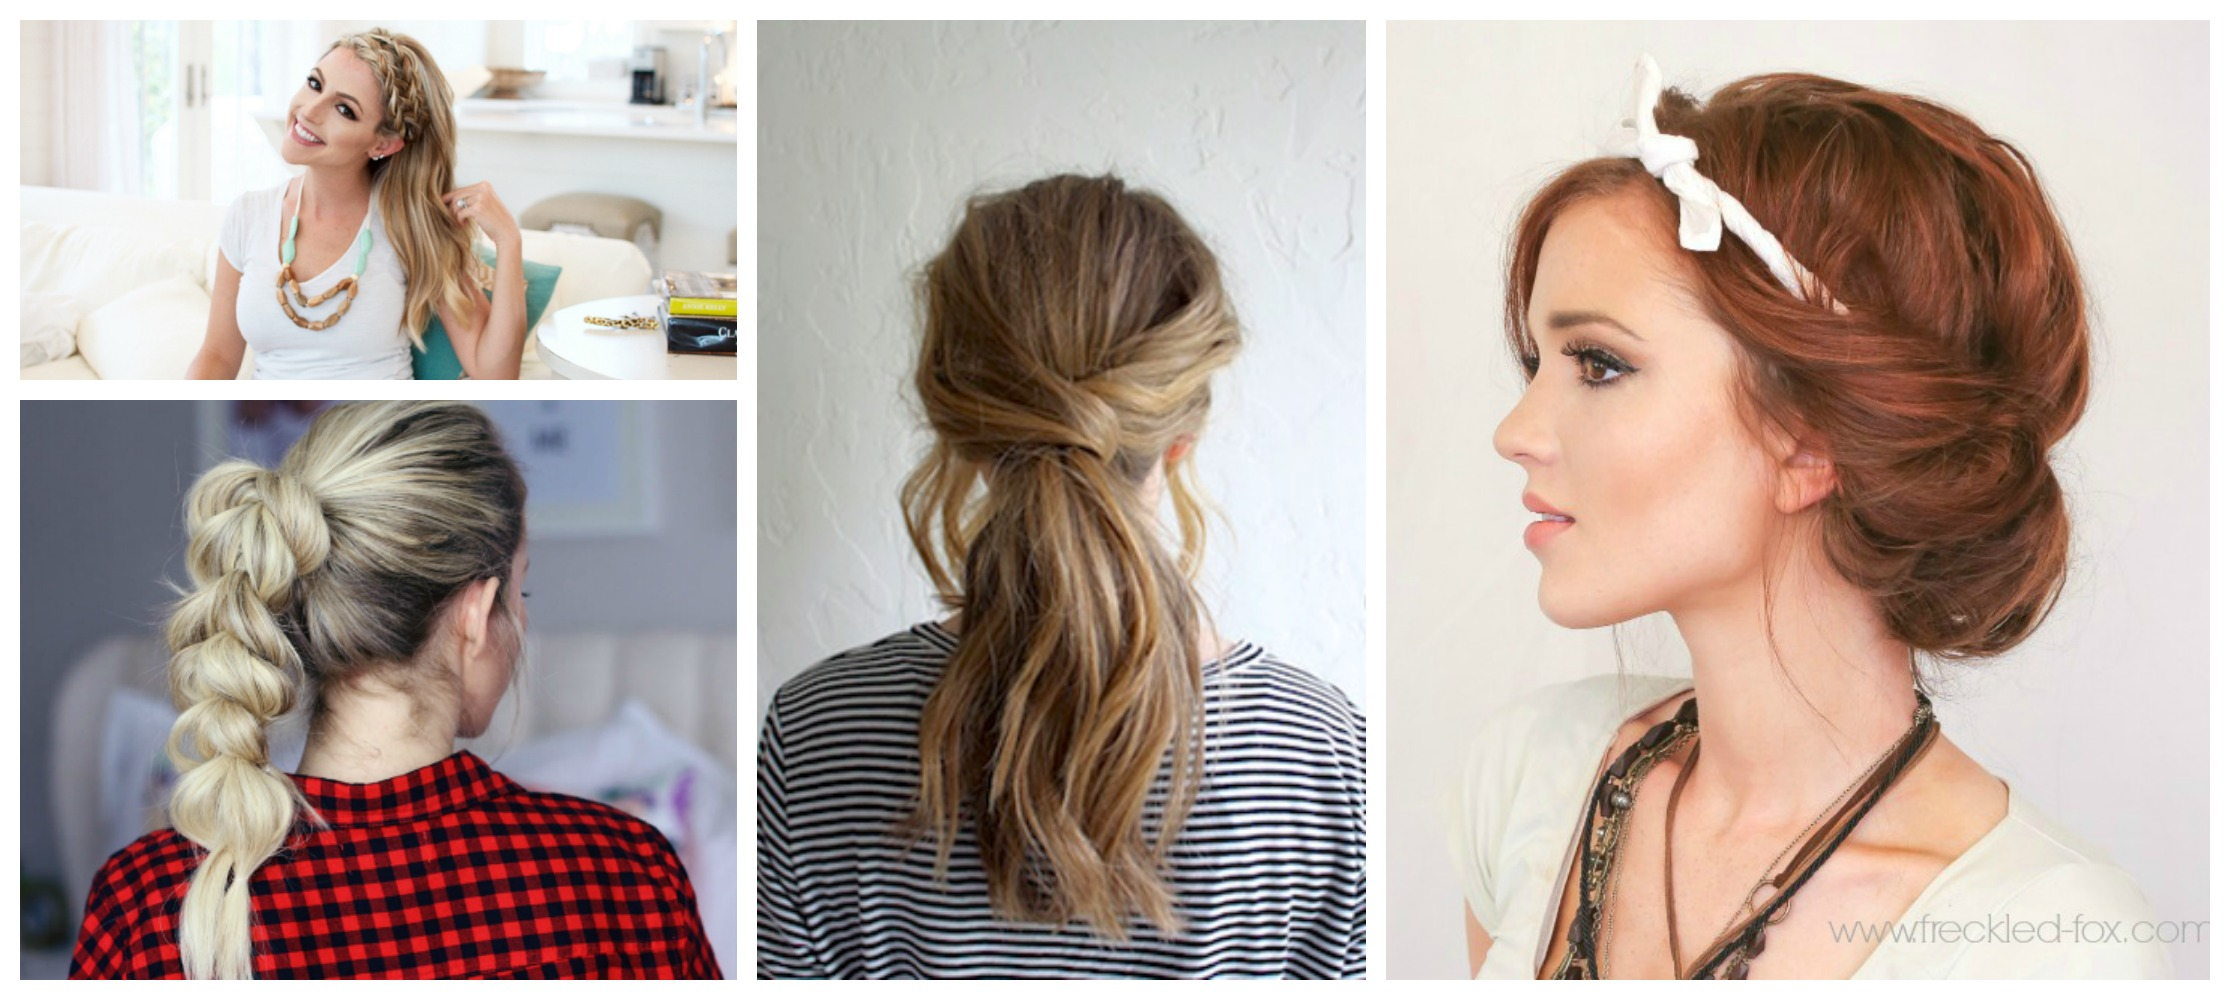 8 Quick & Easy Hairstyles That Make Dirty Hair Look Fab diy Thought